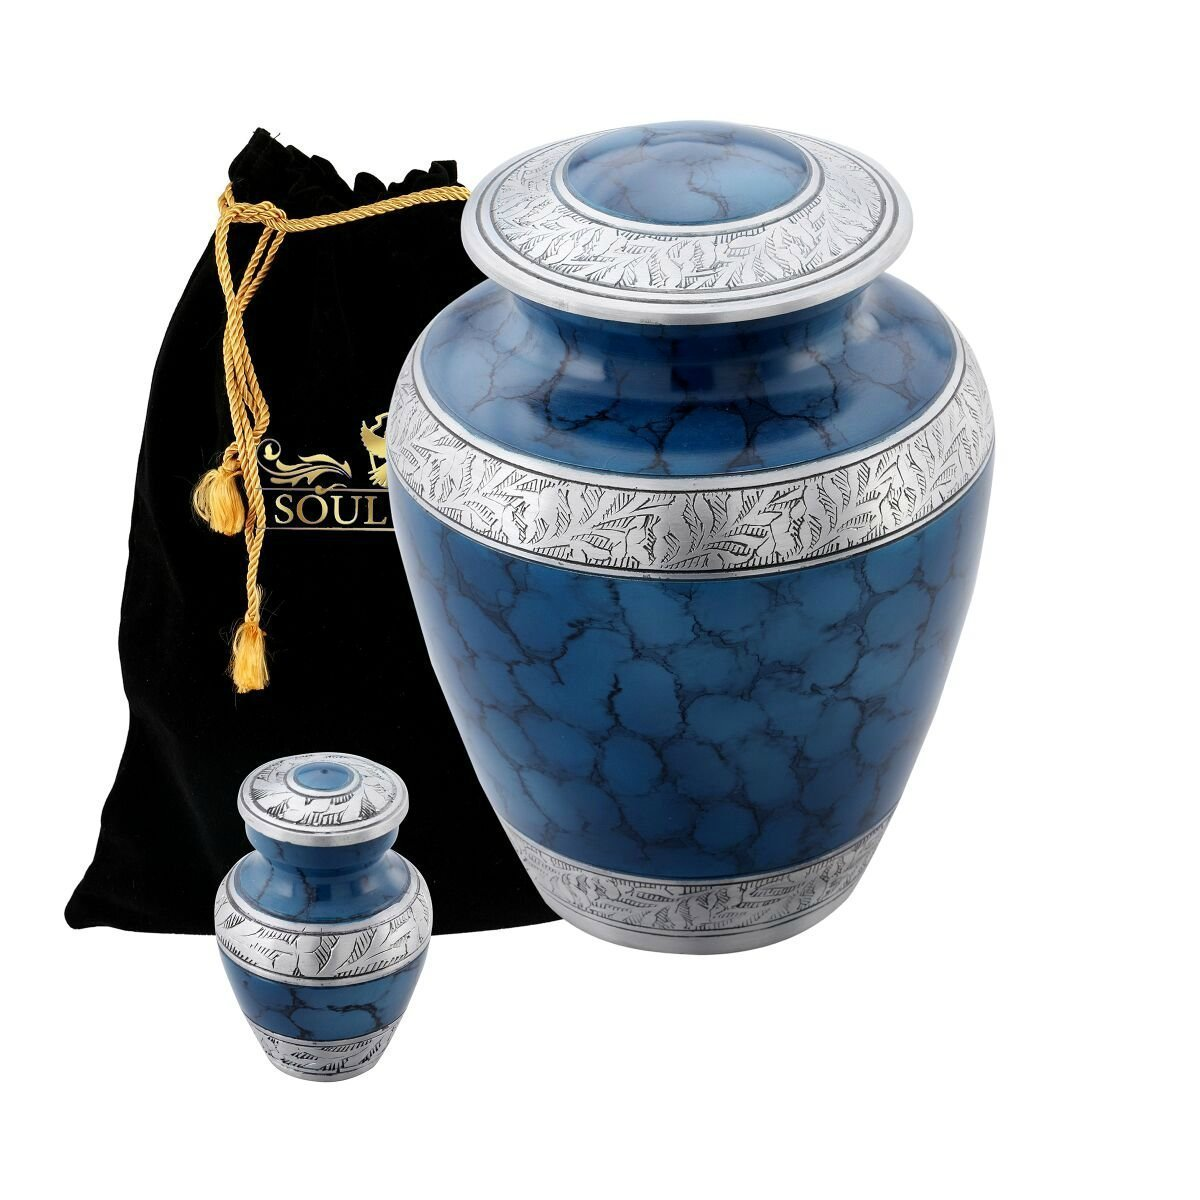 Funeral Urn by SoulUrns - Mystic Blue Cremation Urn With Identical Keepsake Urns for Human Ashes - Display Burial Urn at Home - Combo Pack